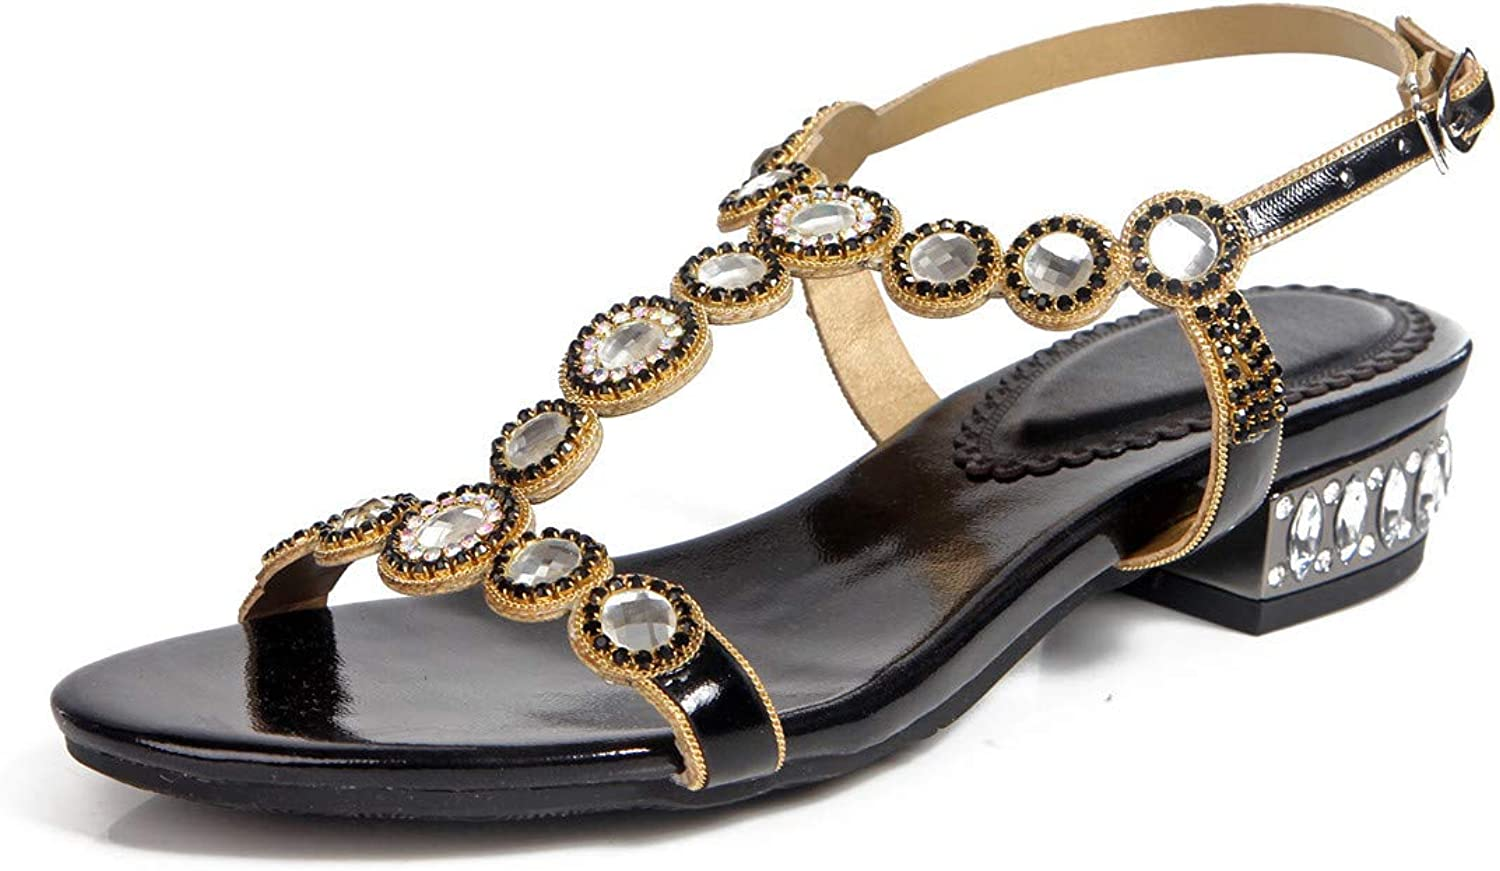 LLBubble Flat Rhinestone Sandals for Wedding Open Toe Ankle Buckle Strap Leather Formal Party Sandals ZX-L004